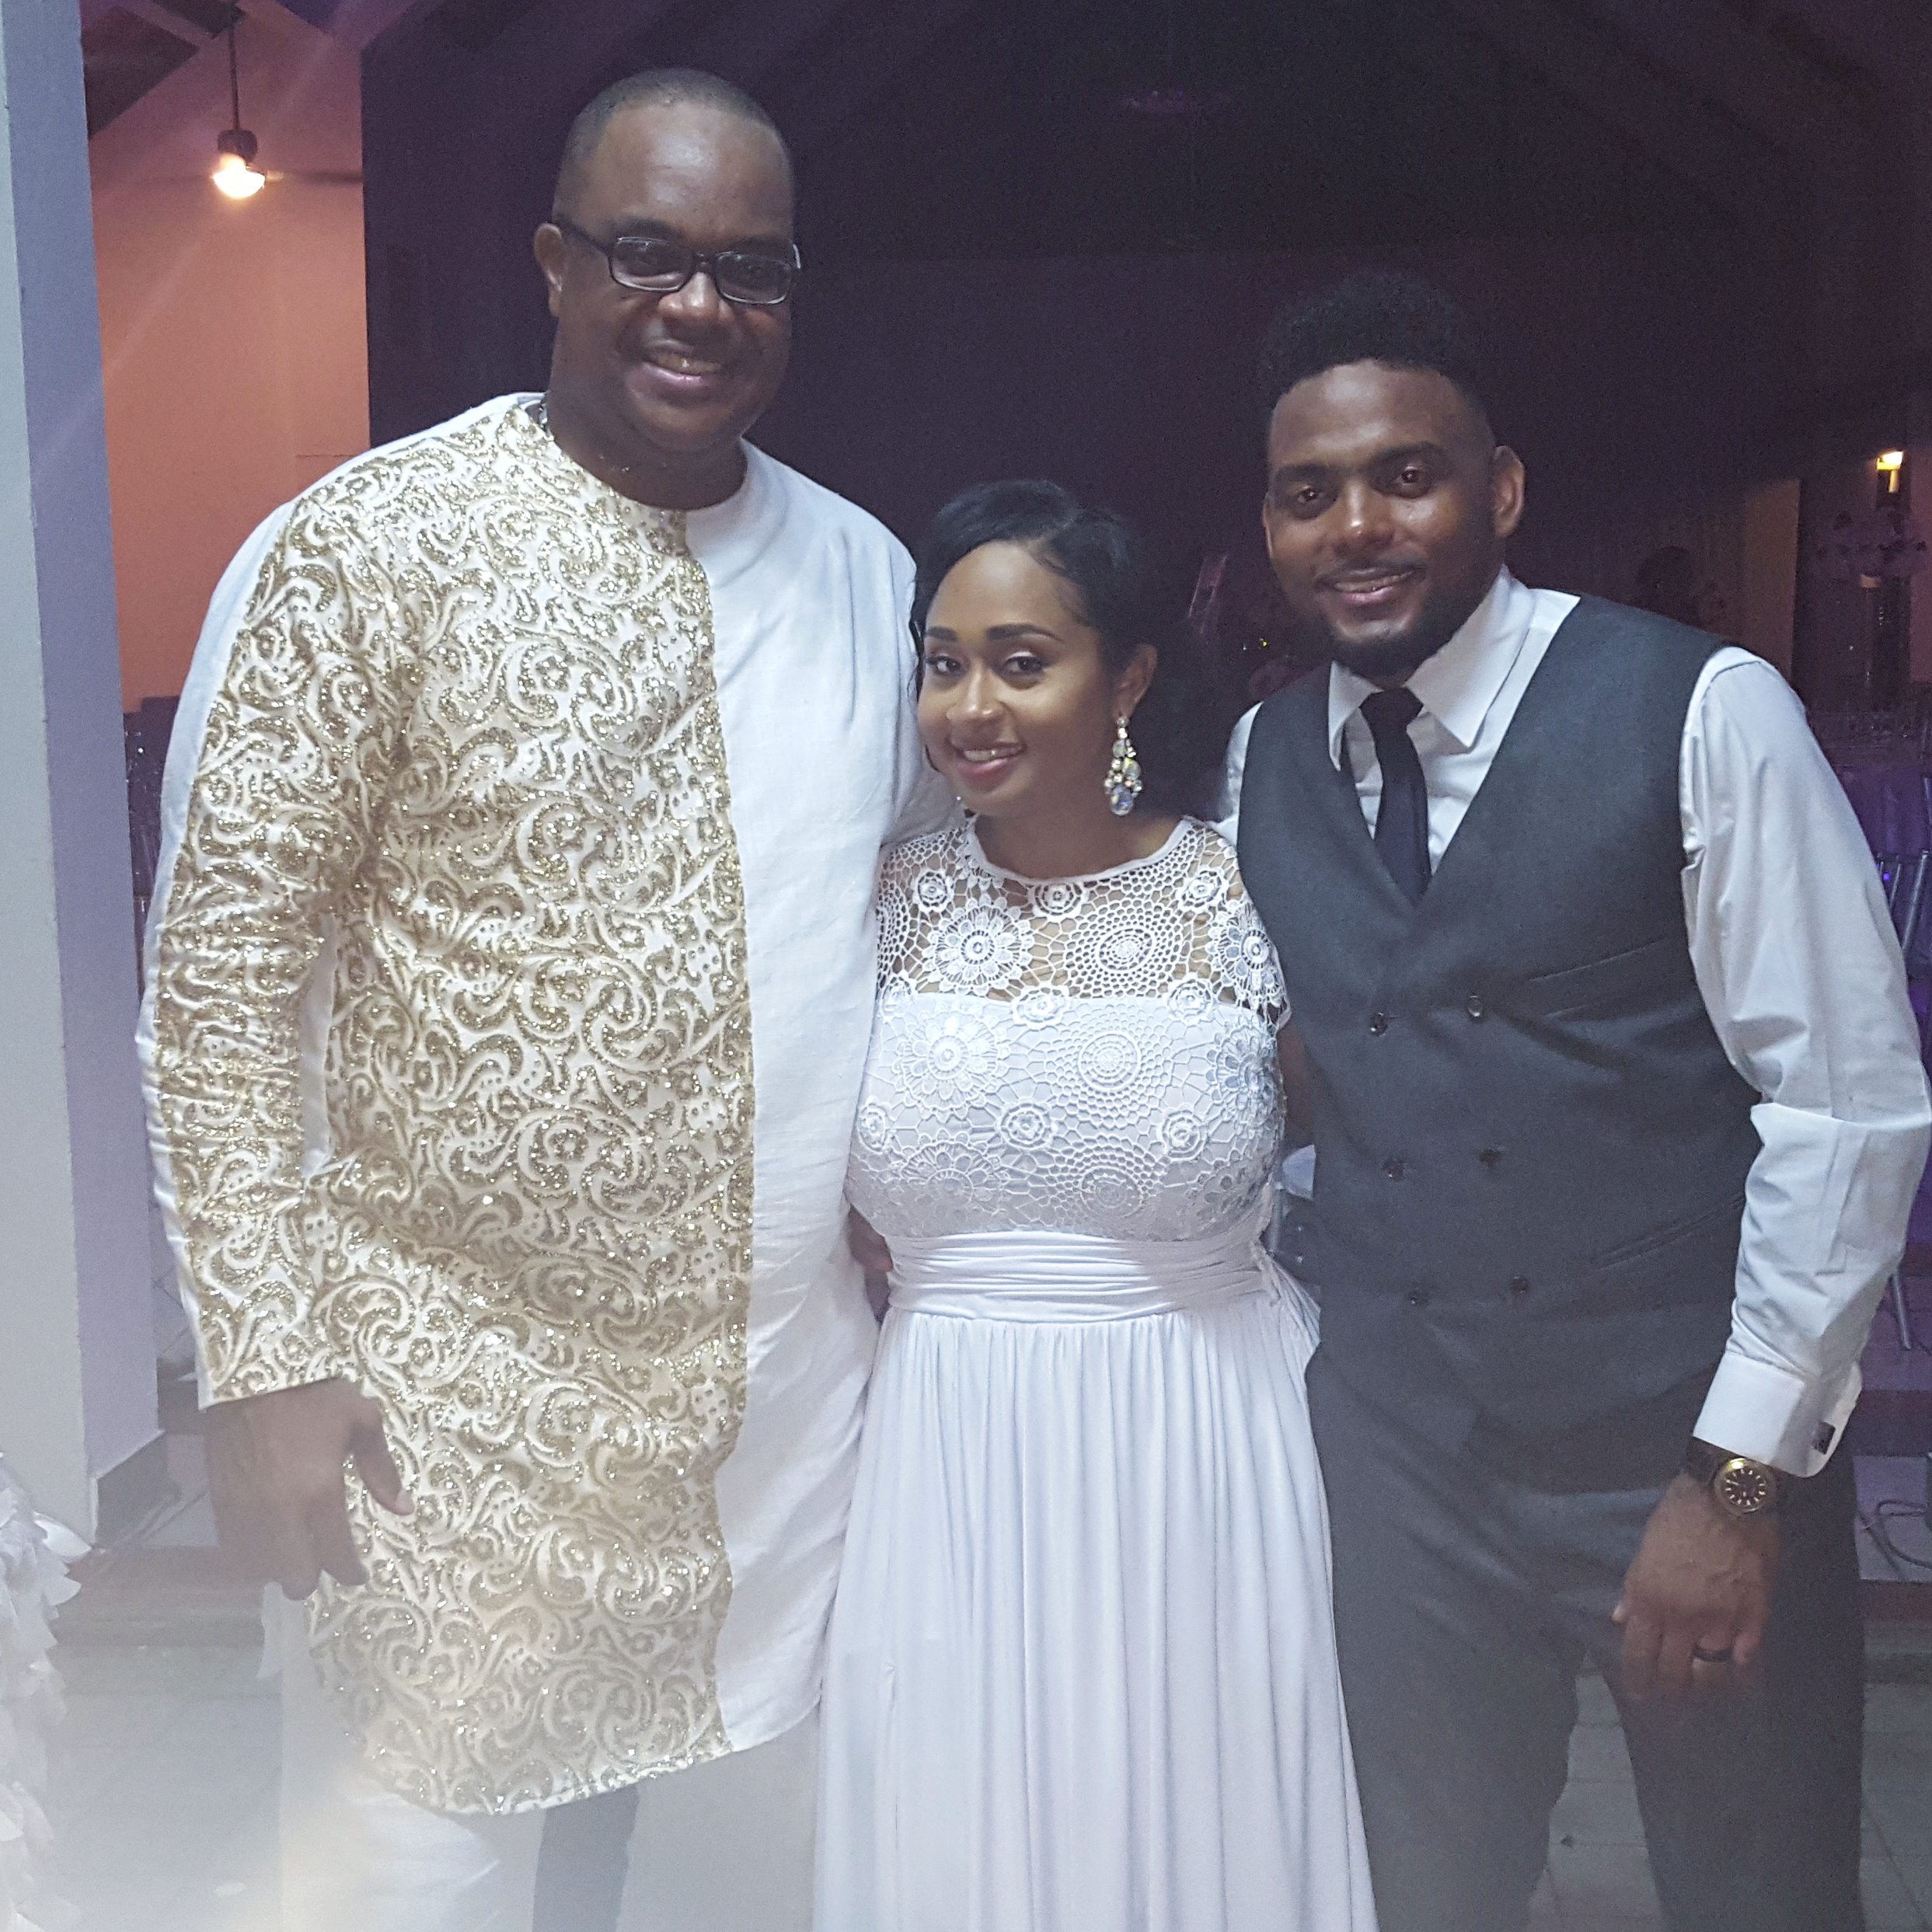 Kevin Voicemail gets married at Caymanas Golf & Country Club Kingston Jamaica